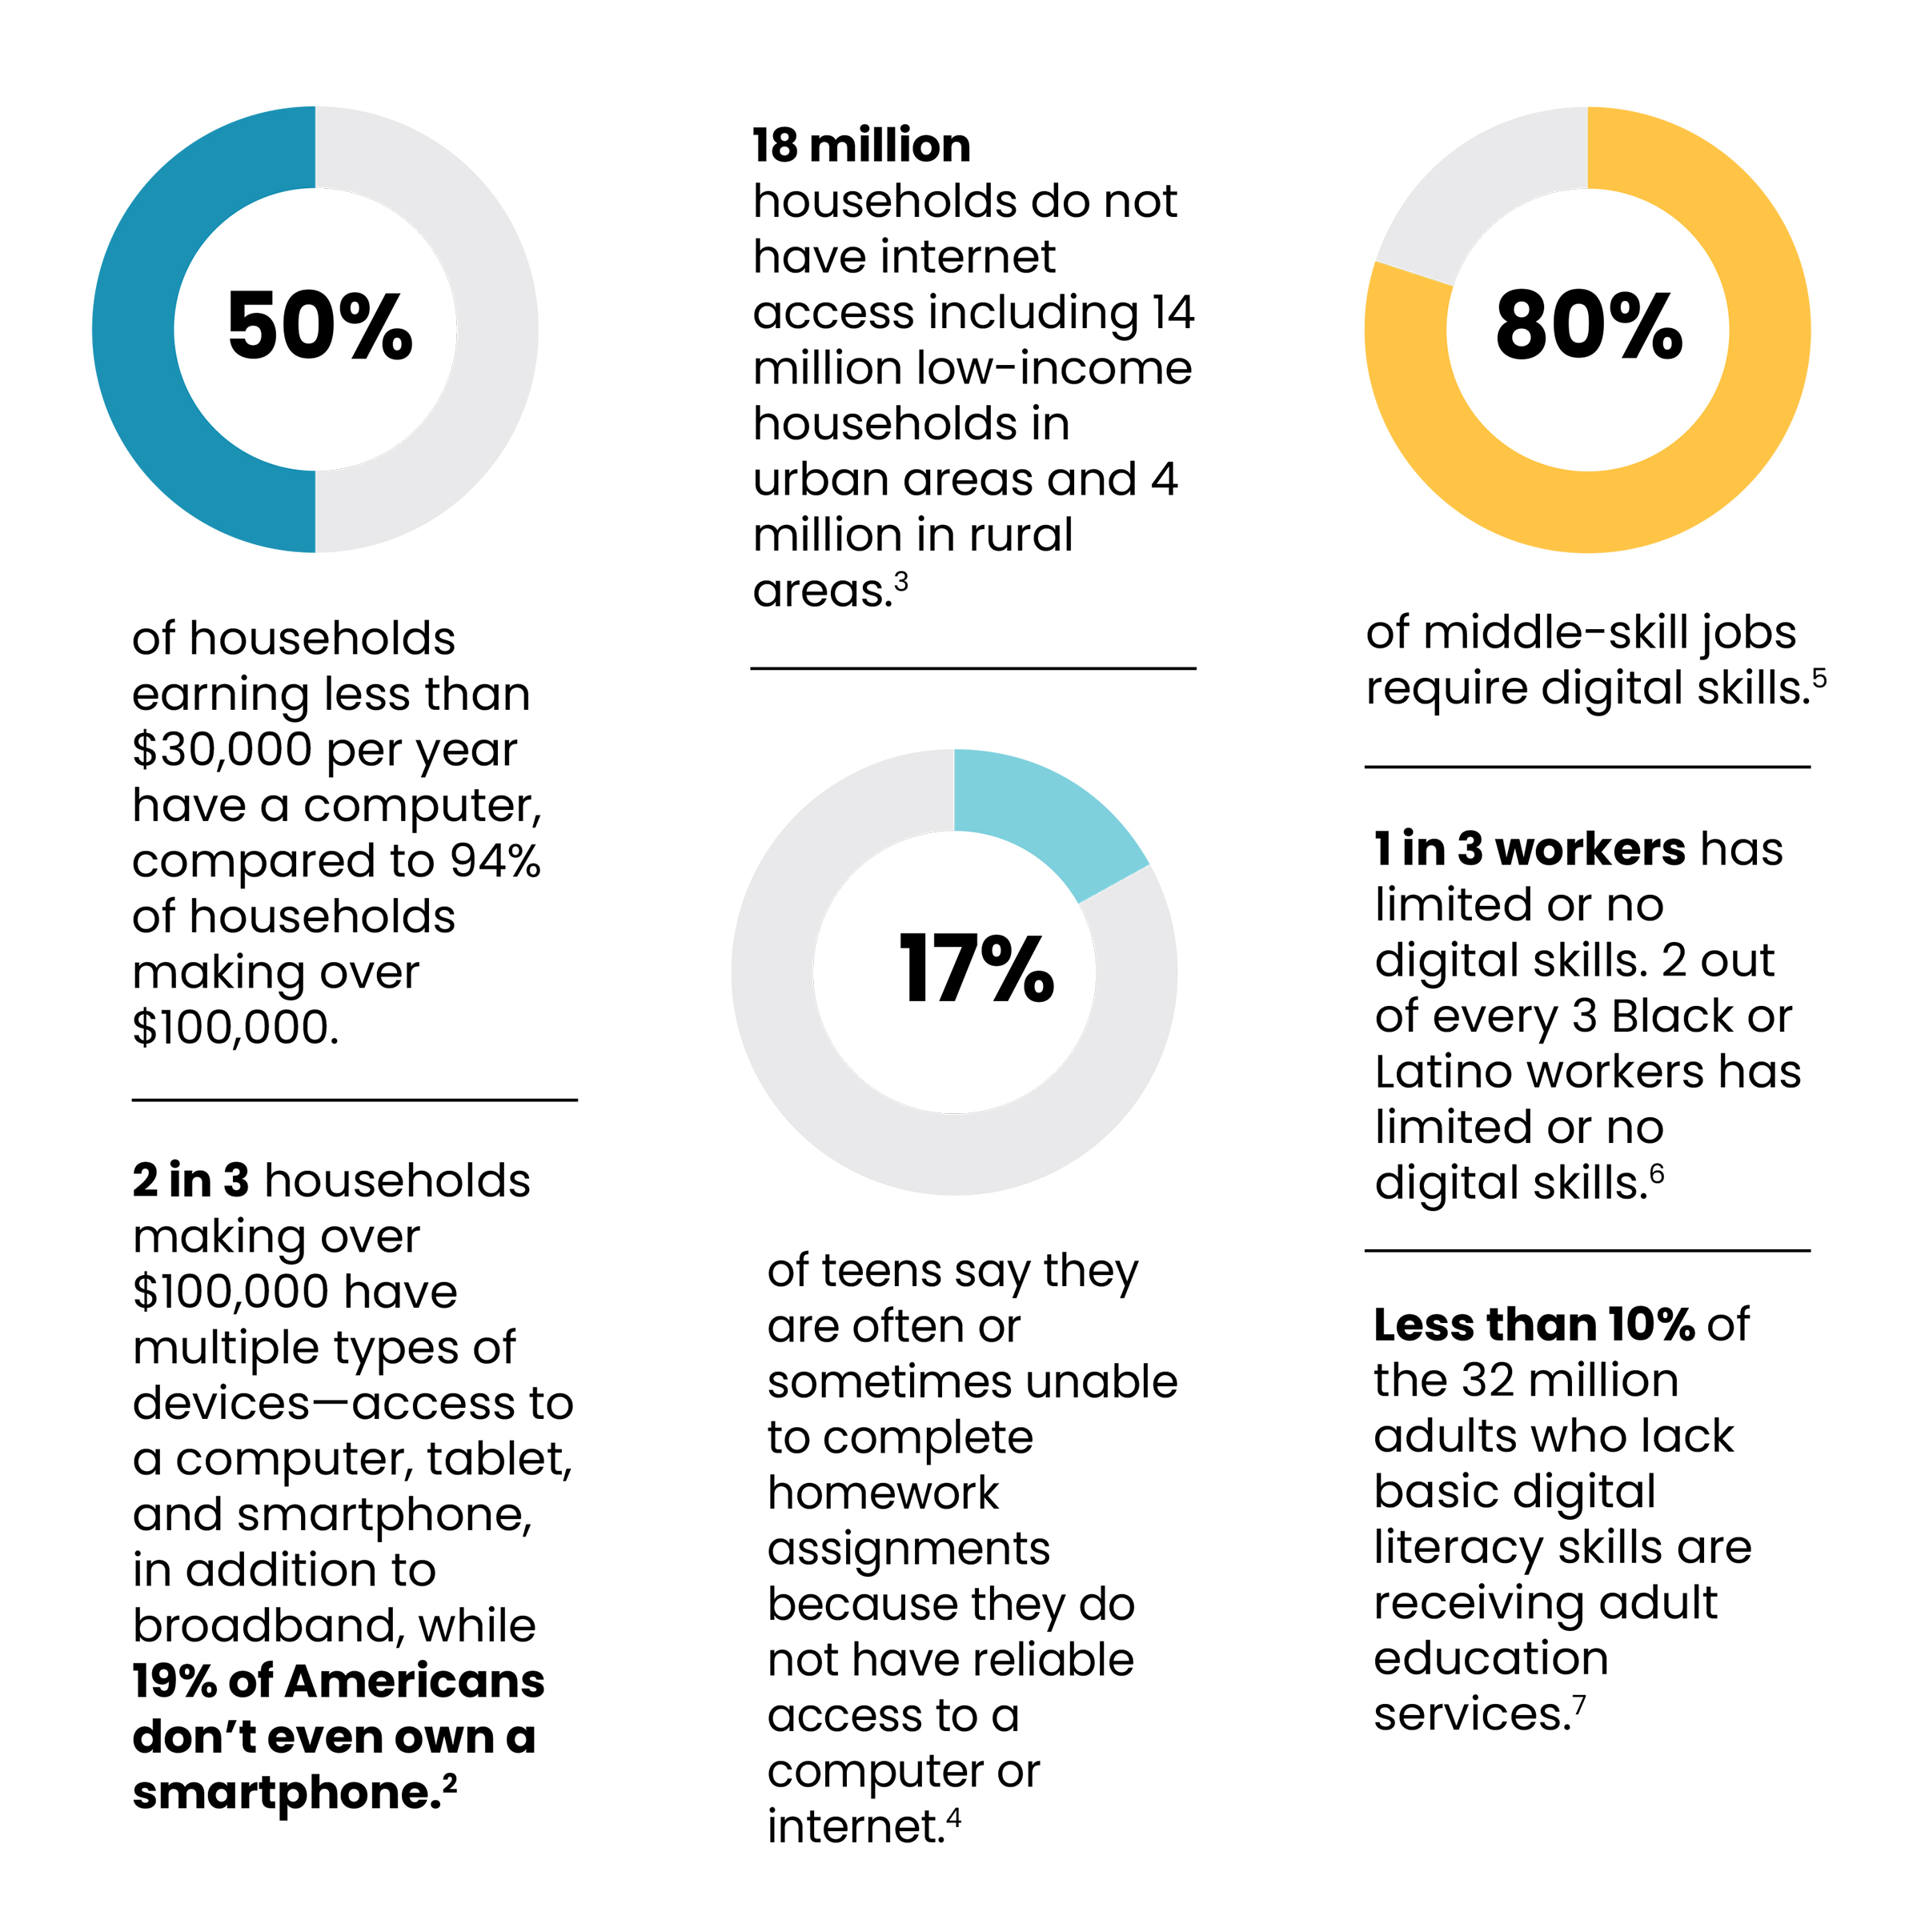 Digital equity facts